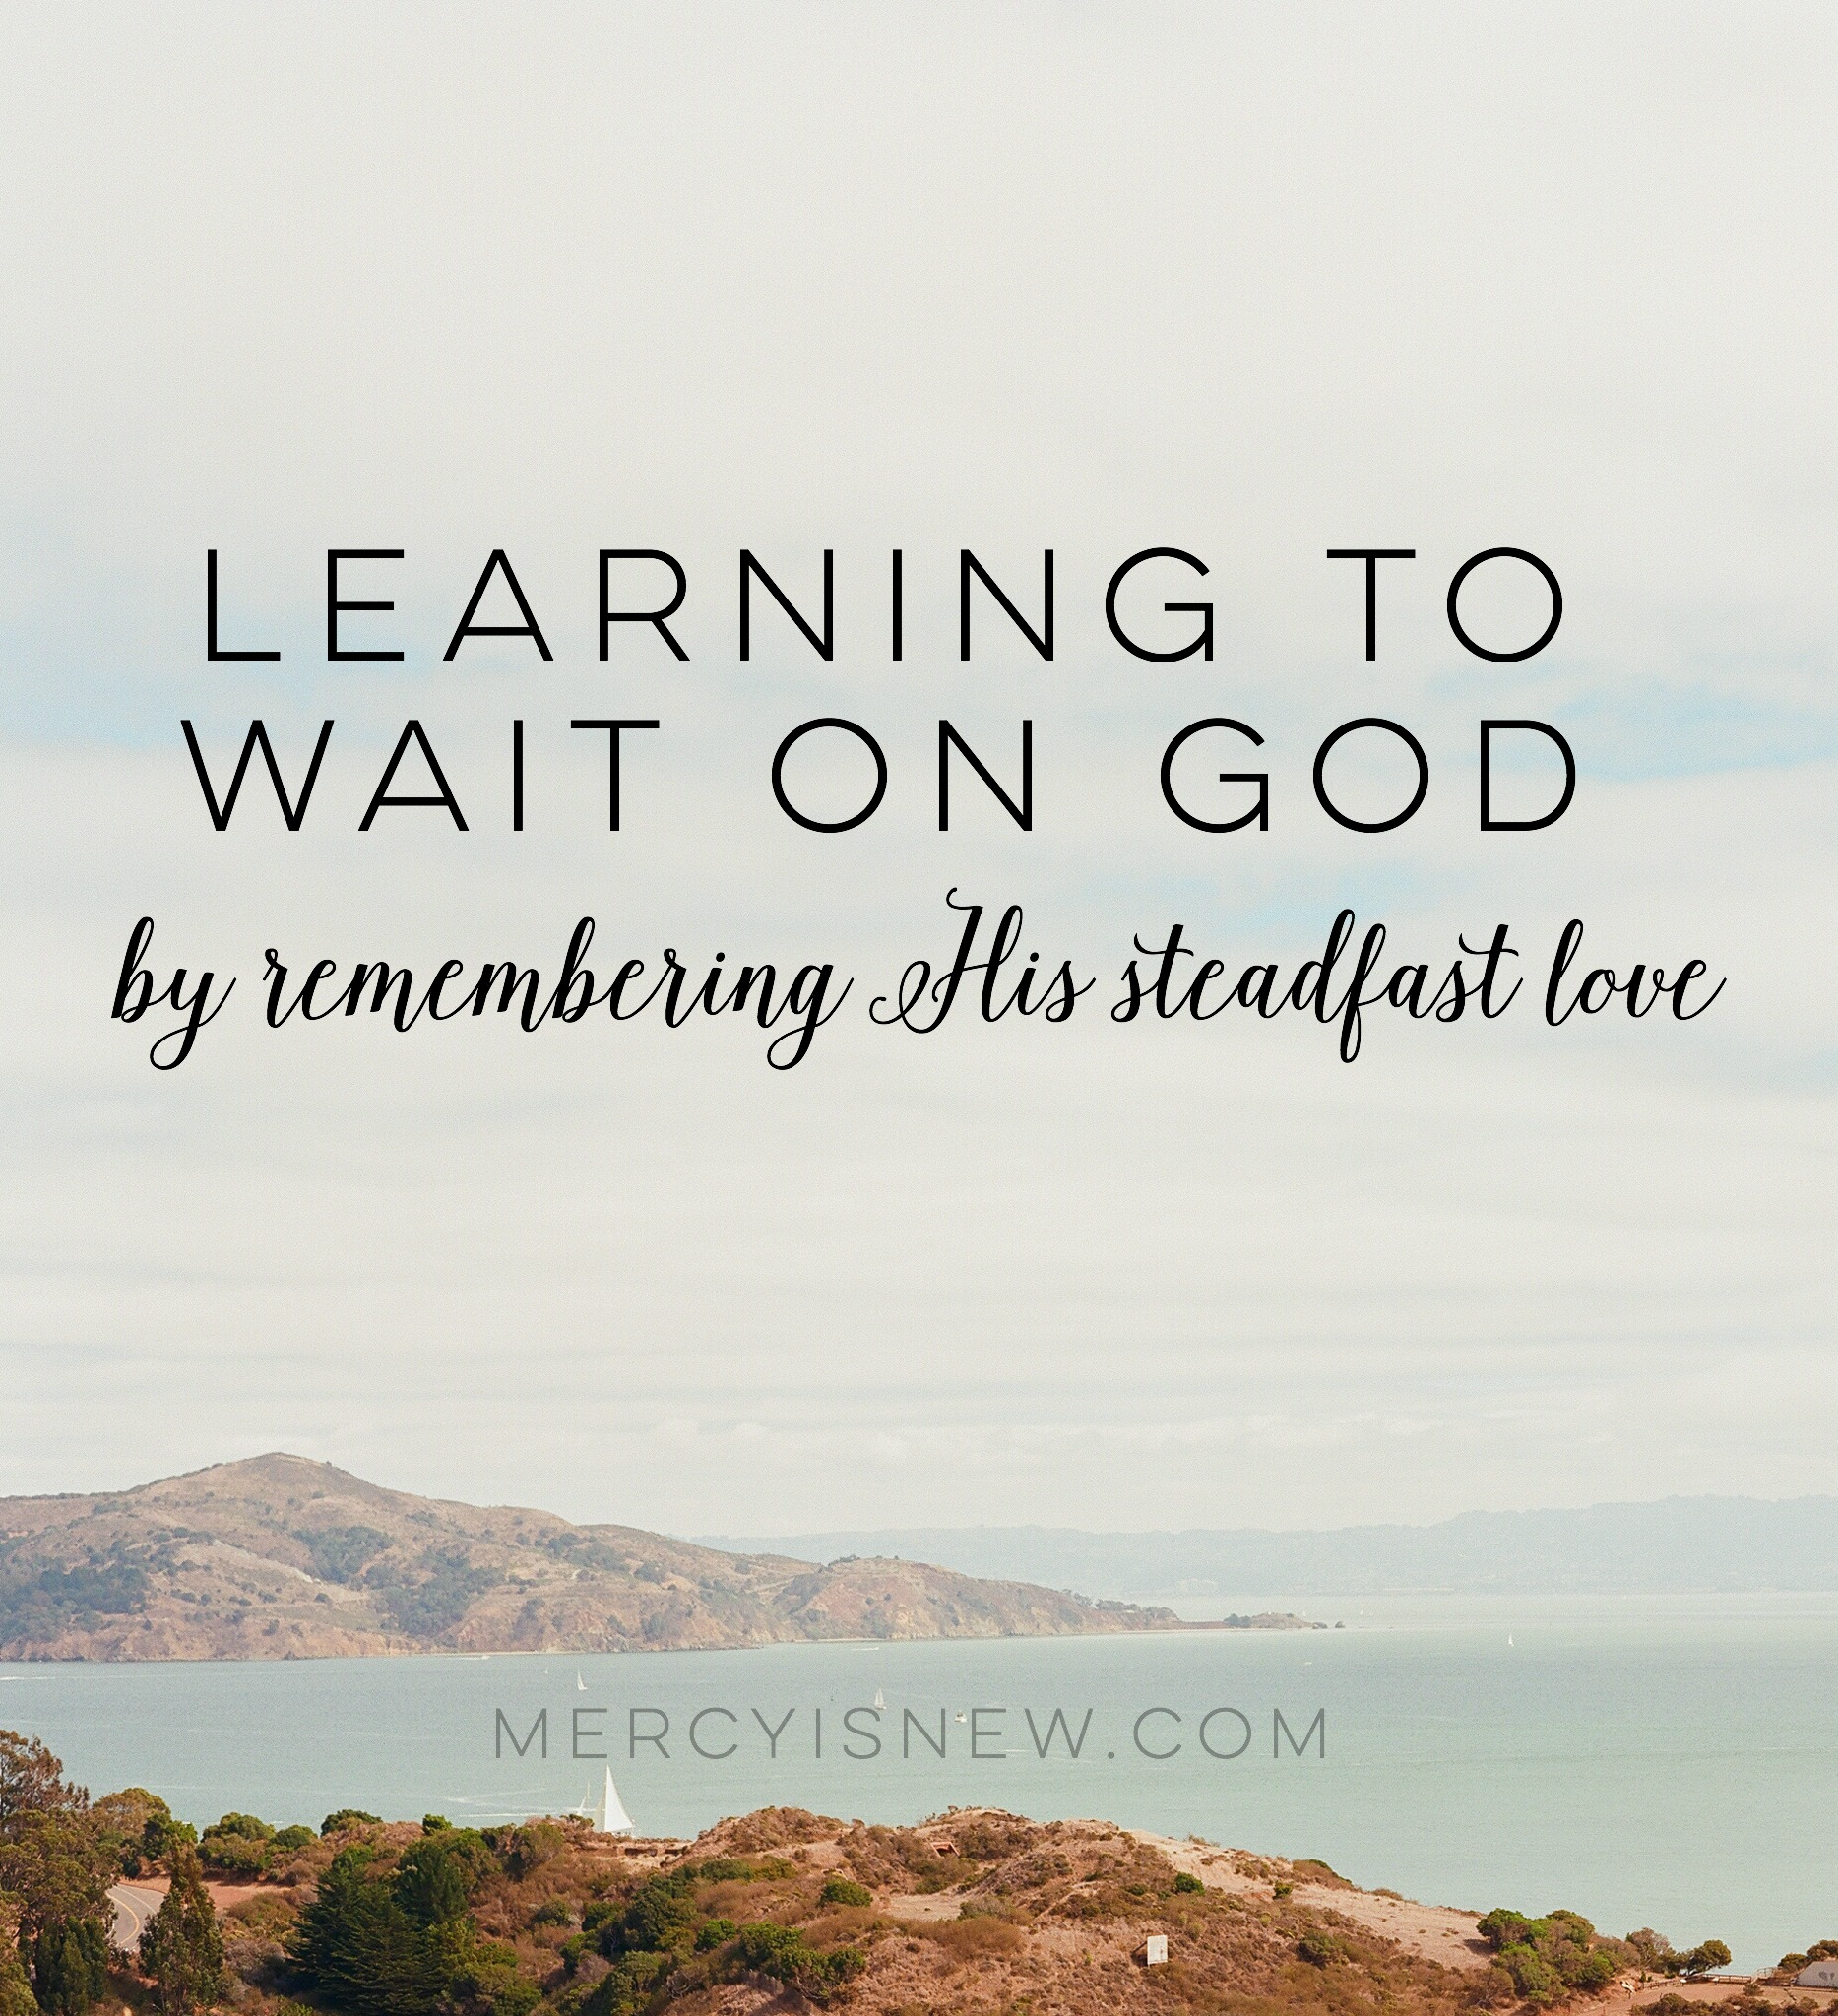 Learning to Wait on God by Remembering His Steadfast Love